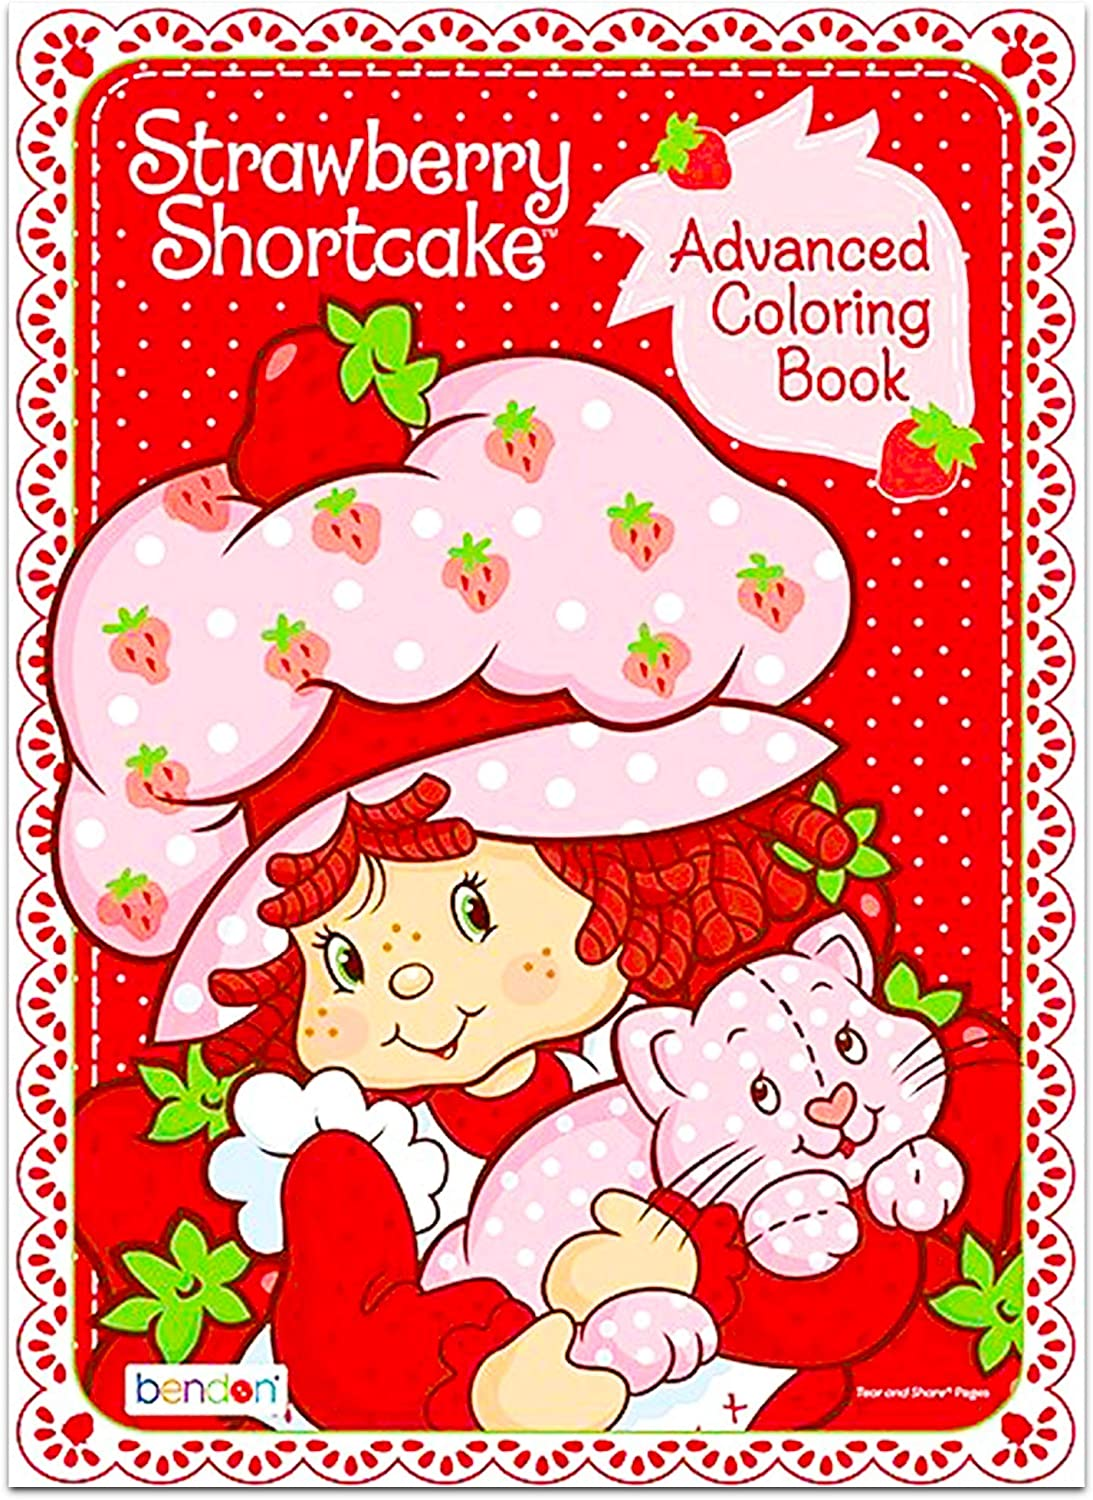 - Amazon.com: Bendon Strawberry Shortcake Advanced Coloring Book